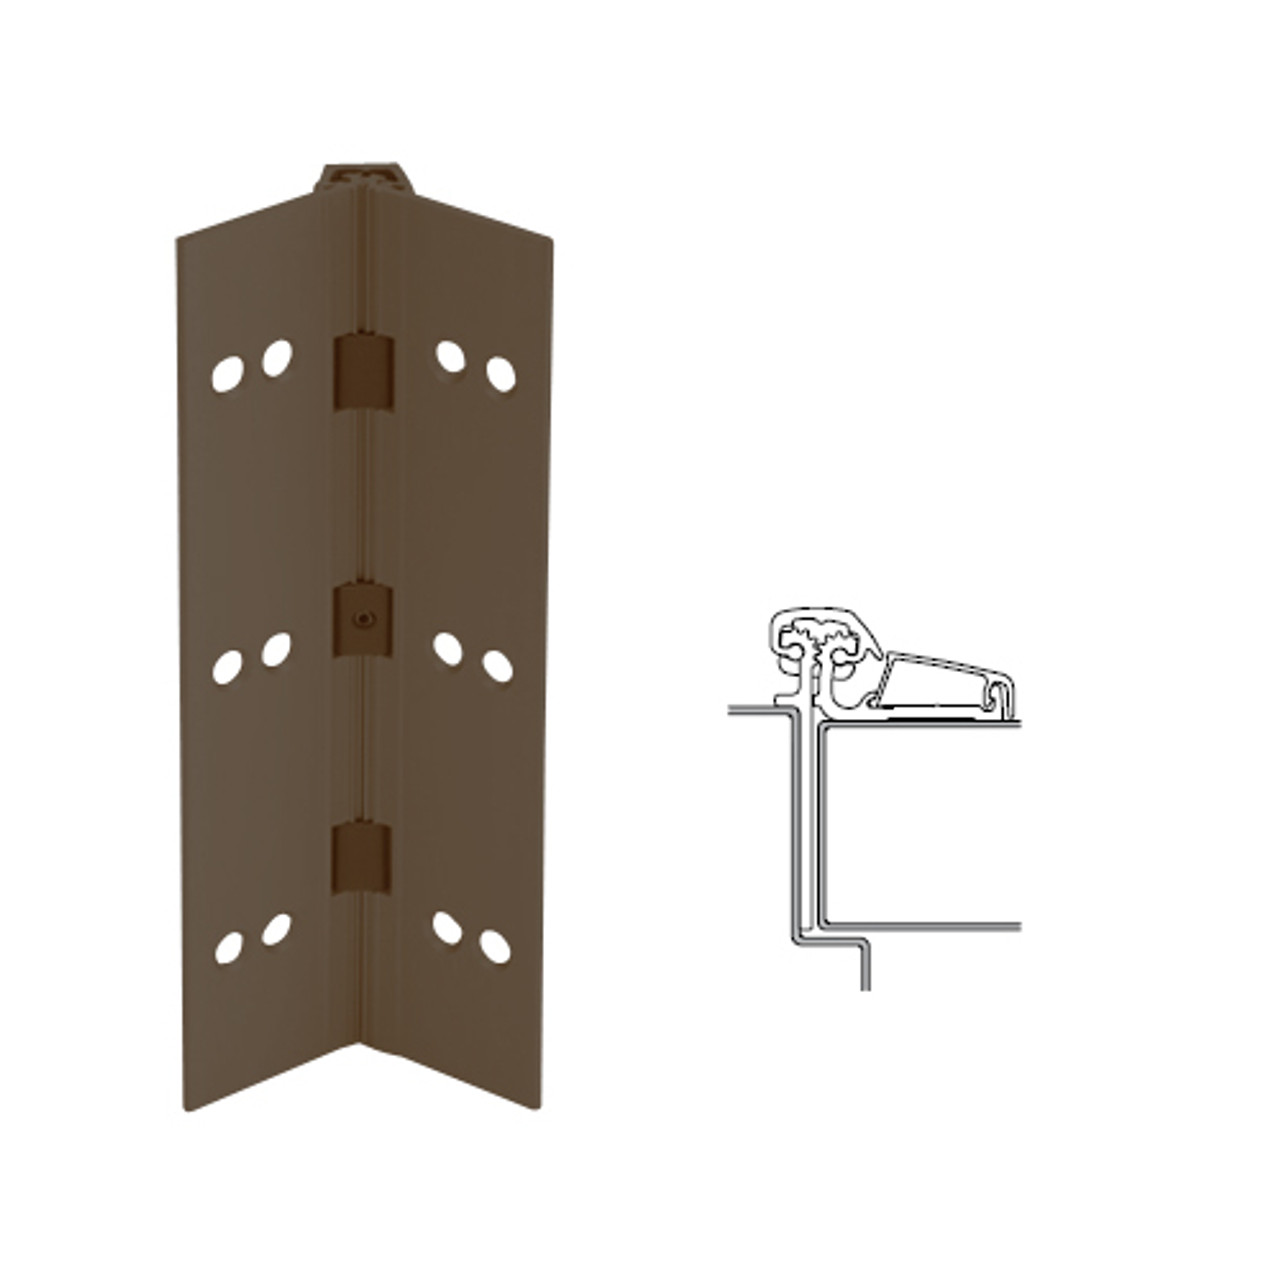 054XY-313AN-85-TF IVES Adjustable Half Surface Continuous Geared Hinges with Thread Forming Screws in Dark Bronze Anodized